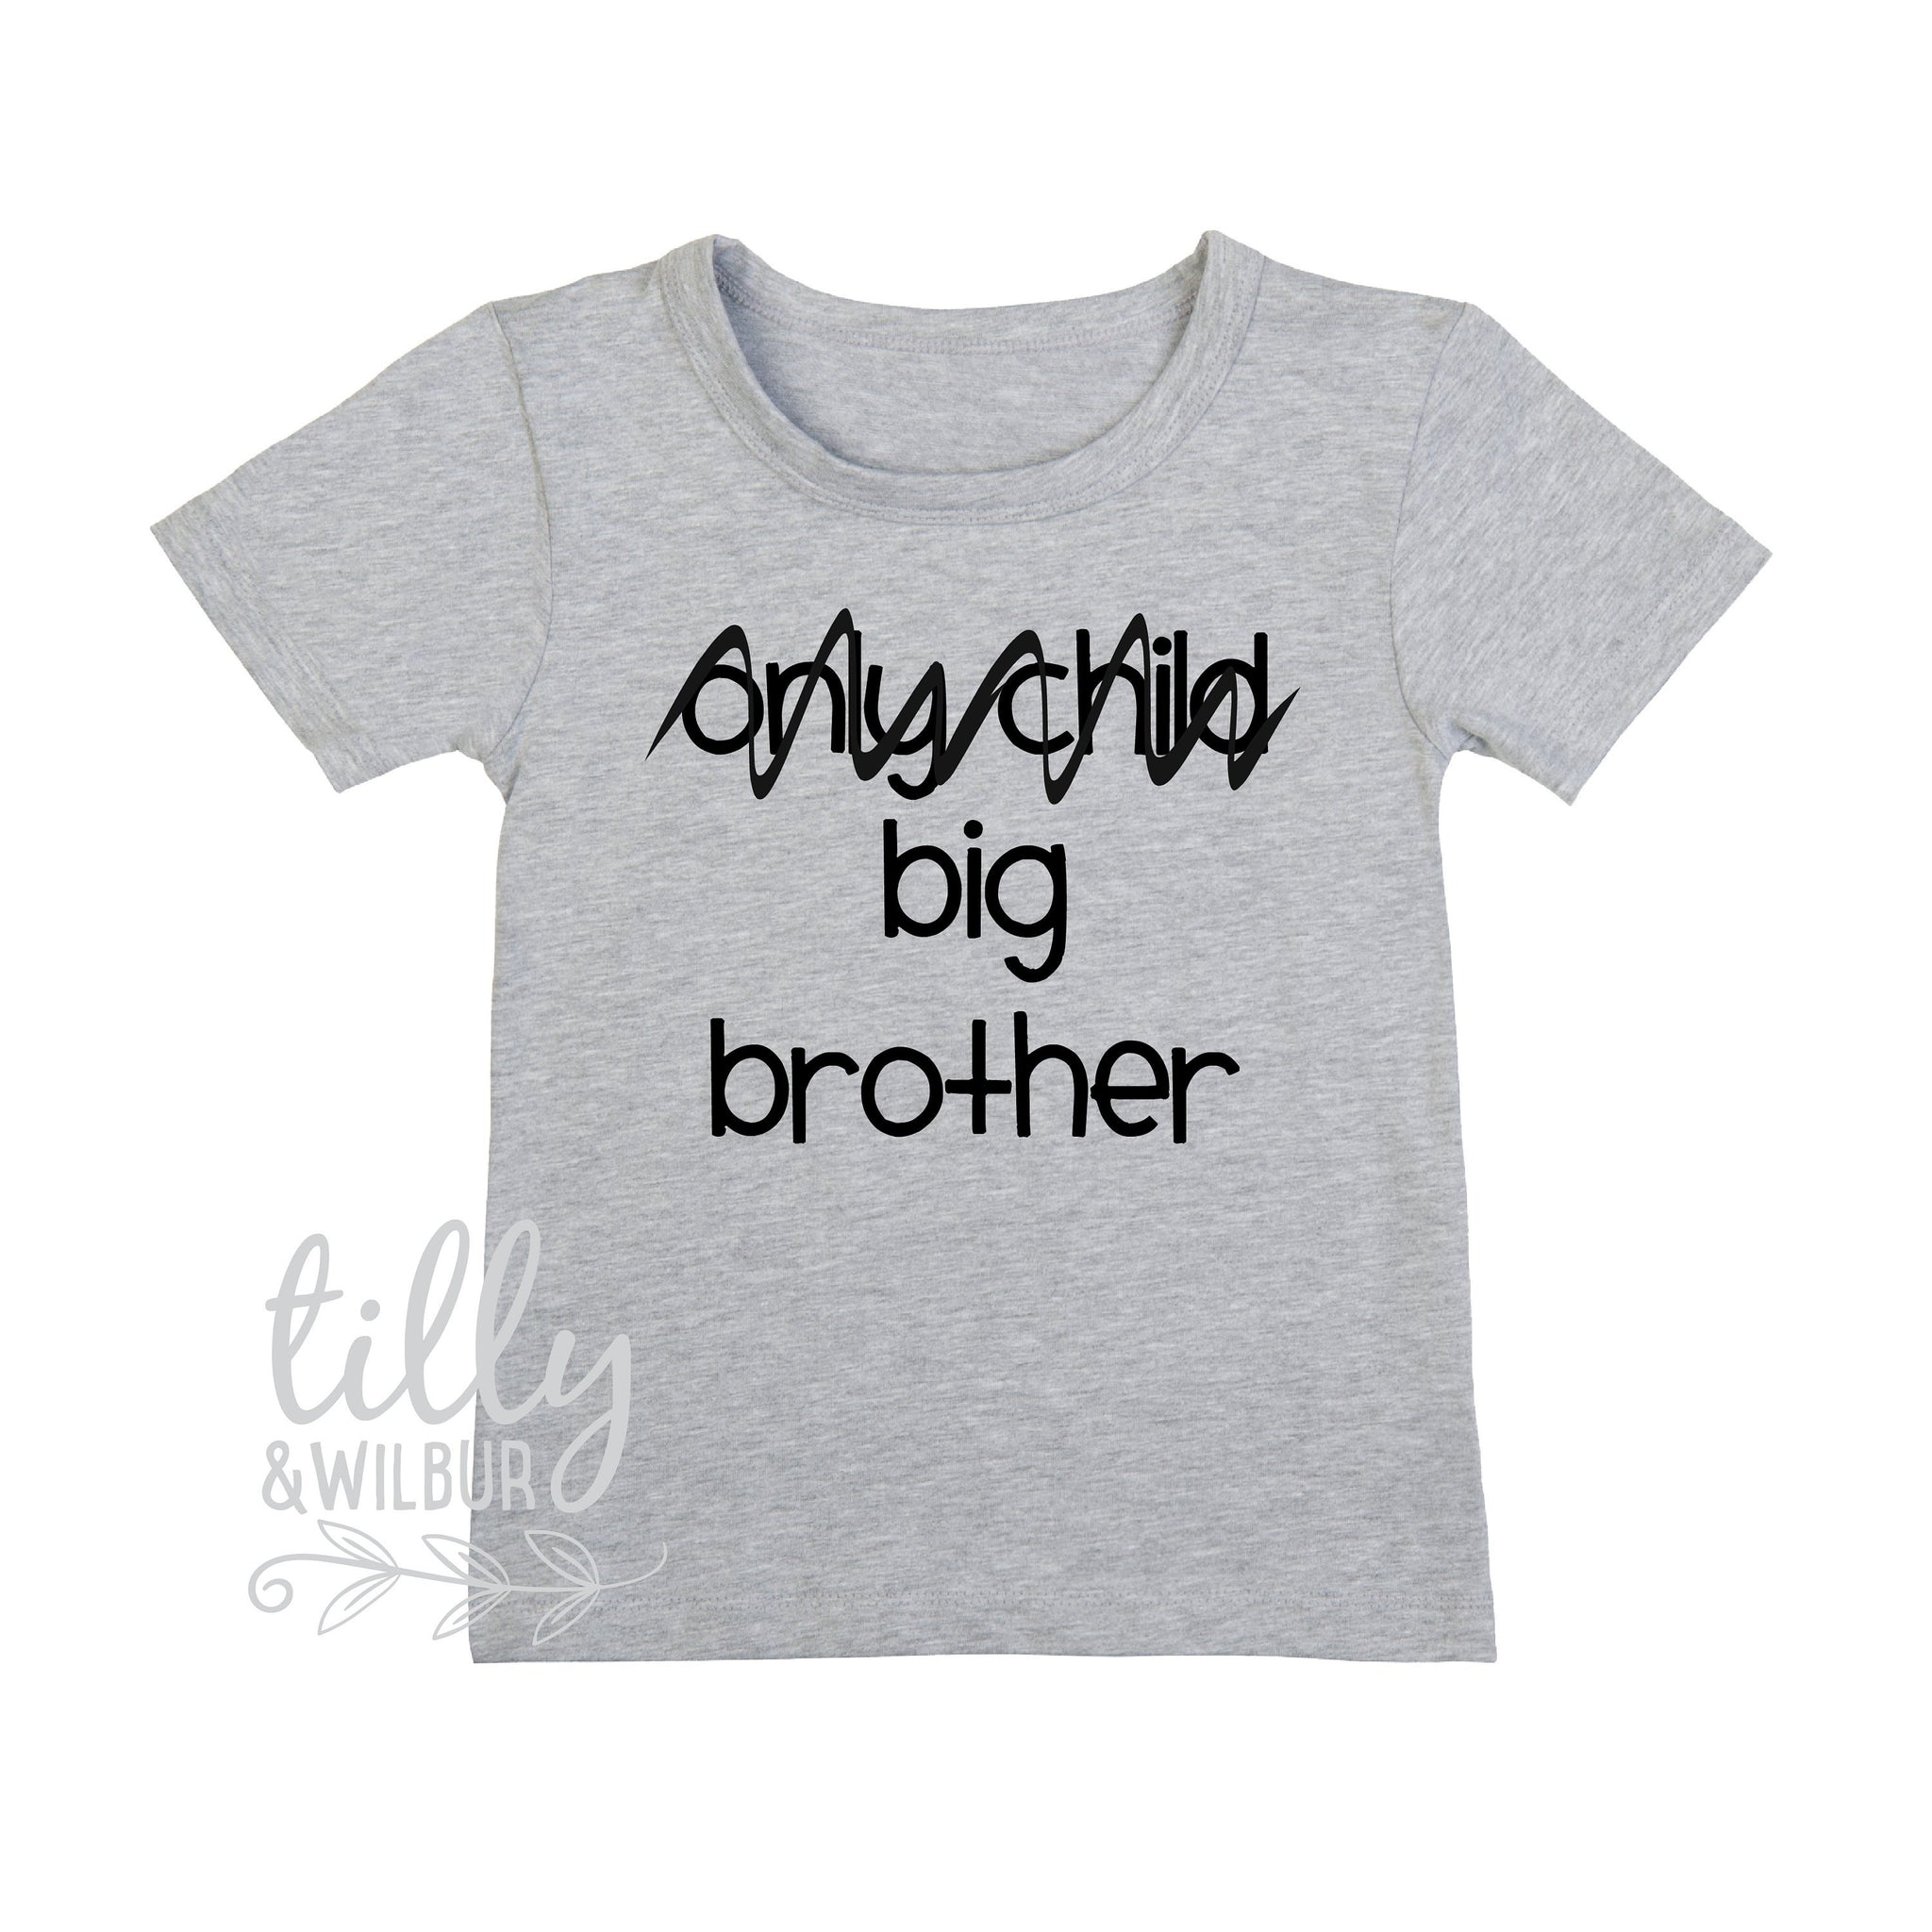 608daf36666ee Only Child, Big Brother T-Shirt For Boys, Future Big Brother T-